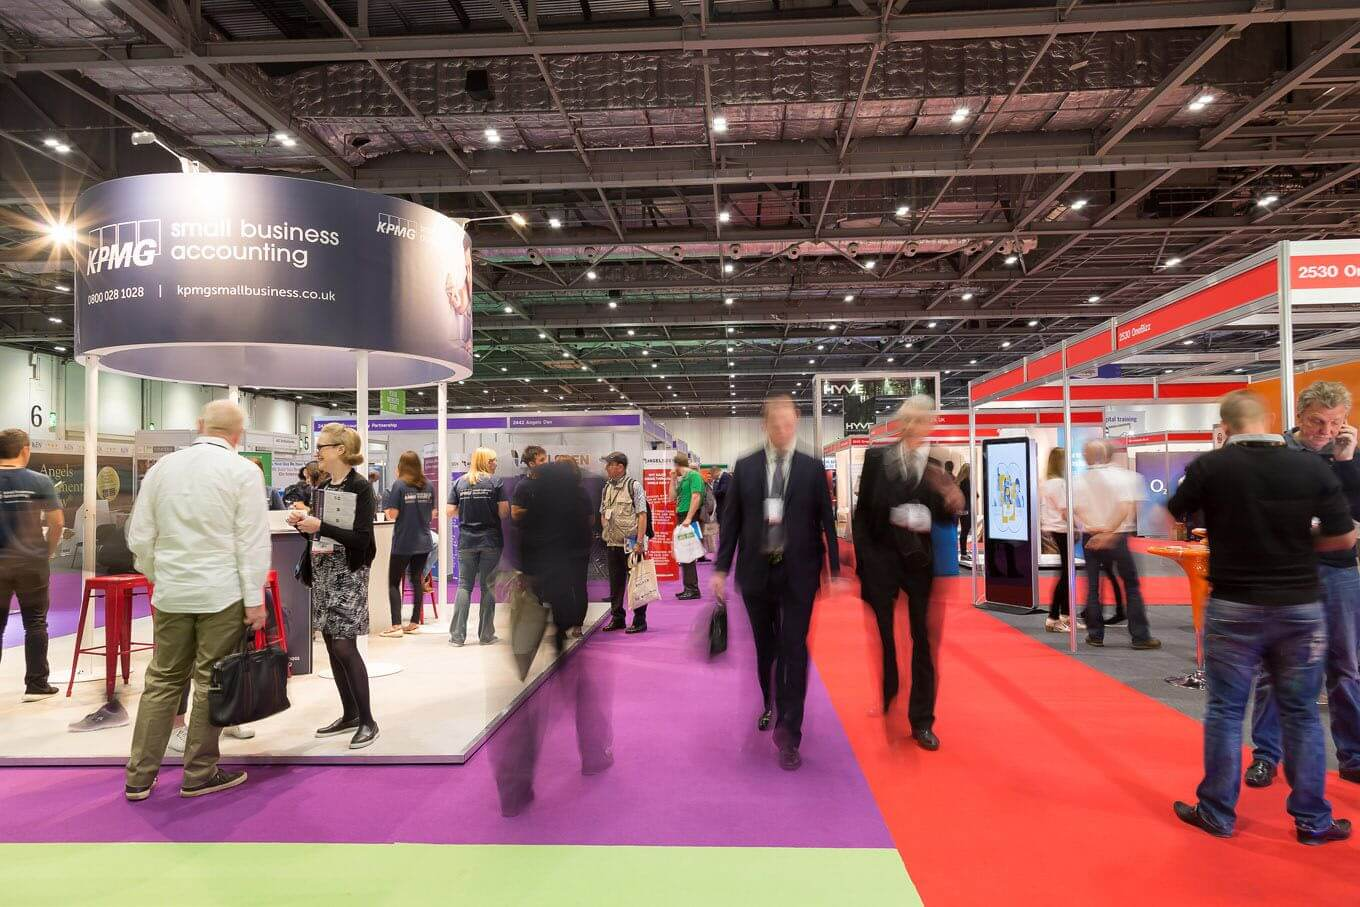 Event photography of The Business Show at ExCel London taken with slow shutterspeed setting